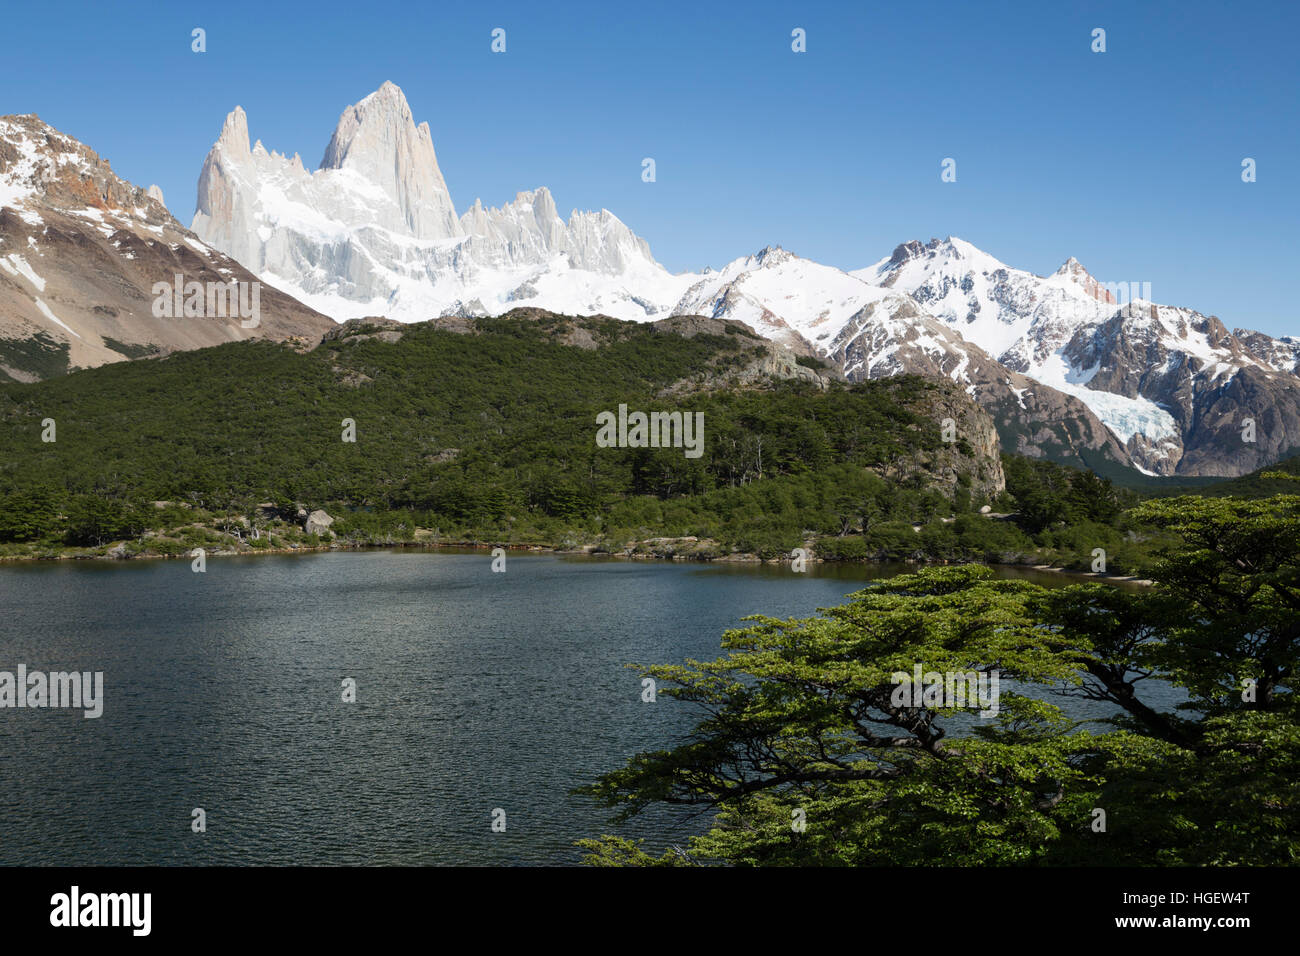 View of Mount Fitz Roy from Laguna Capri, El Chalten, Patagonia, Argentina, South America - Stock Image